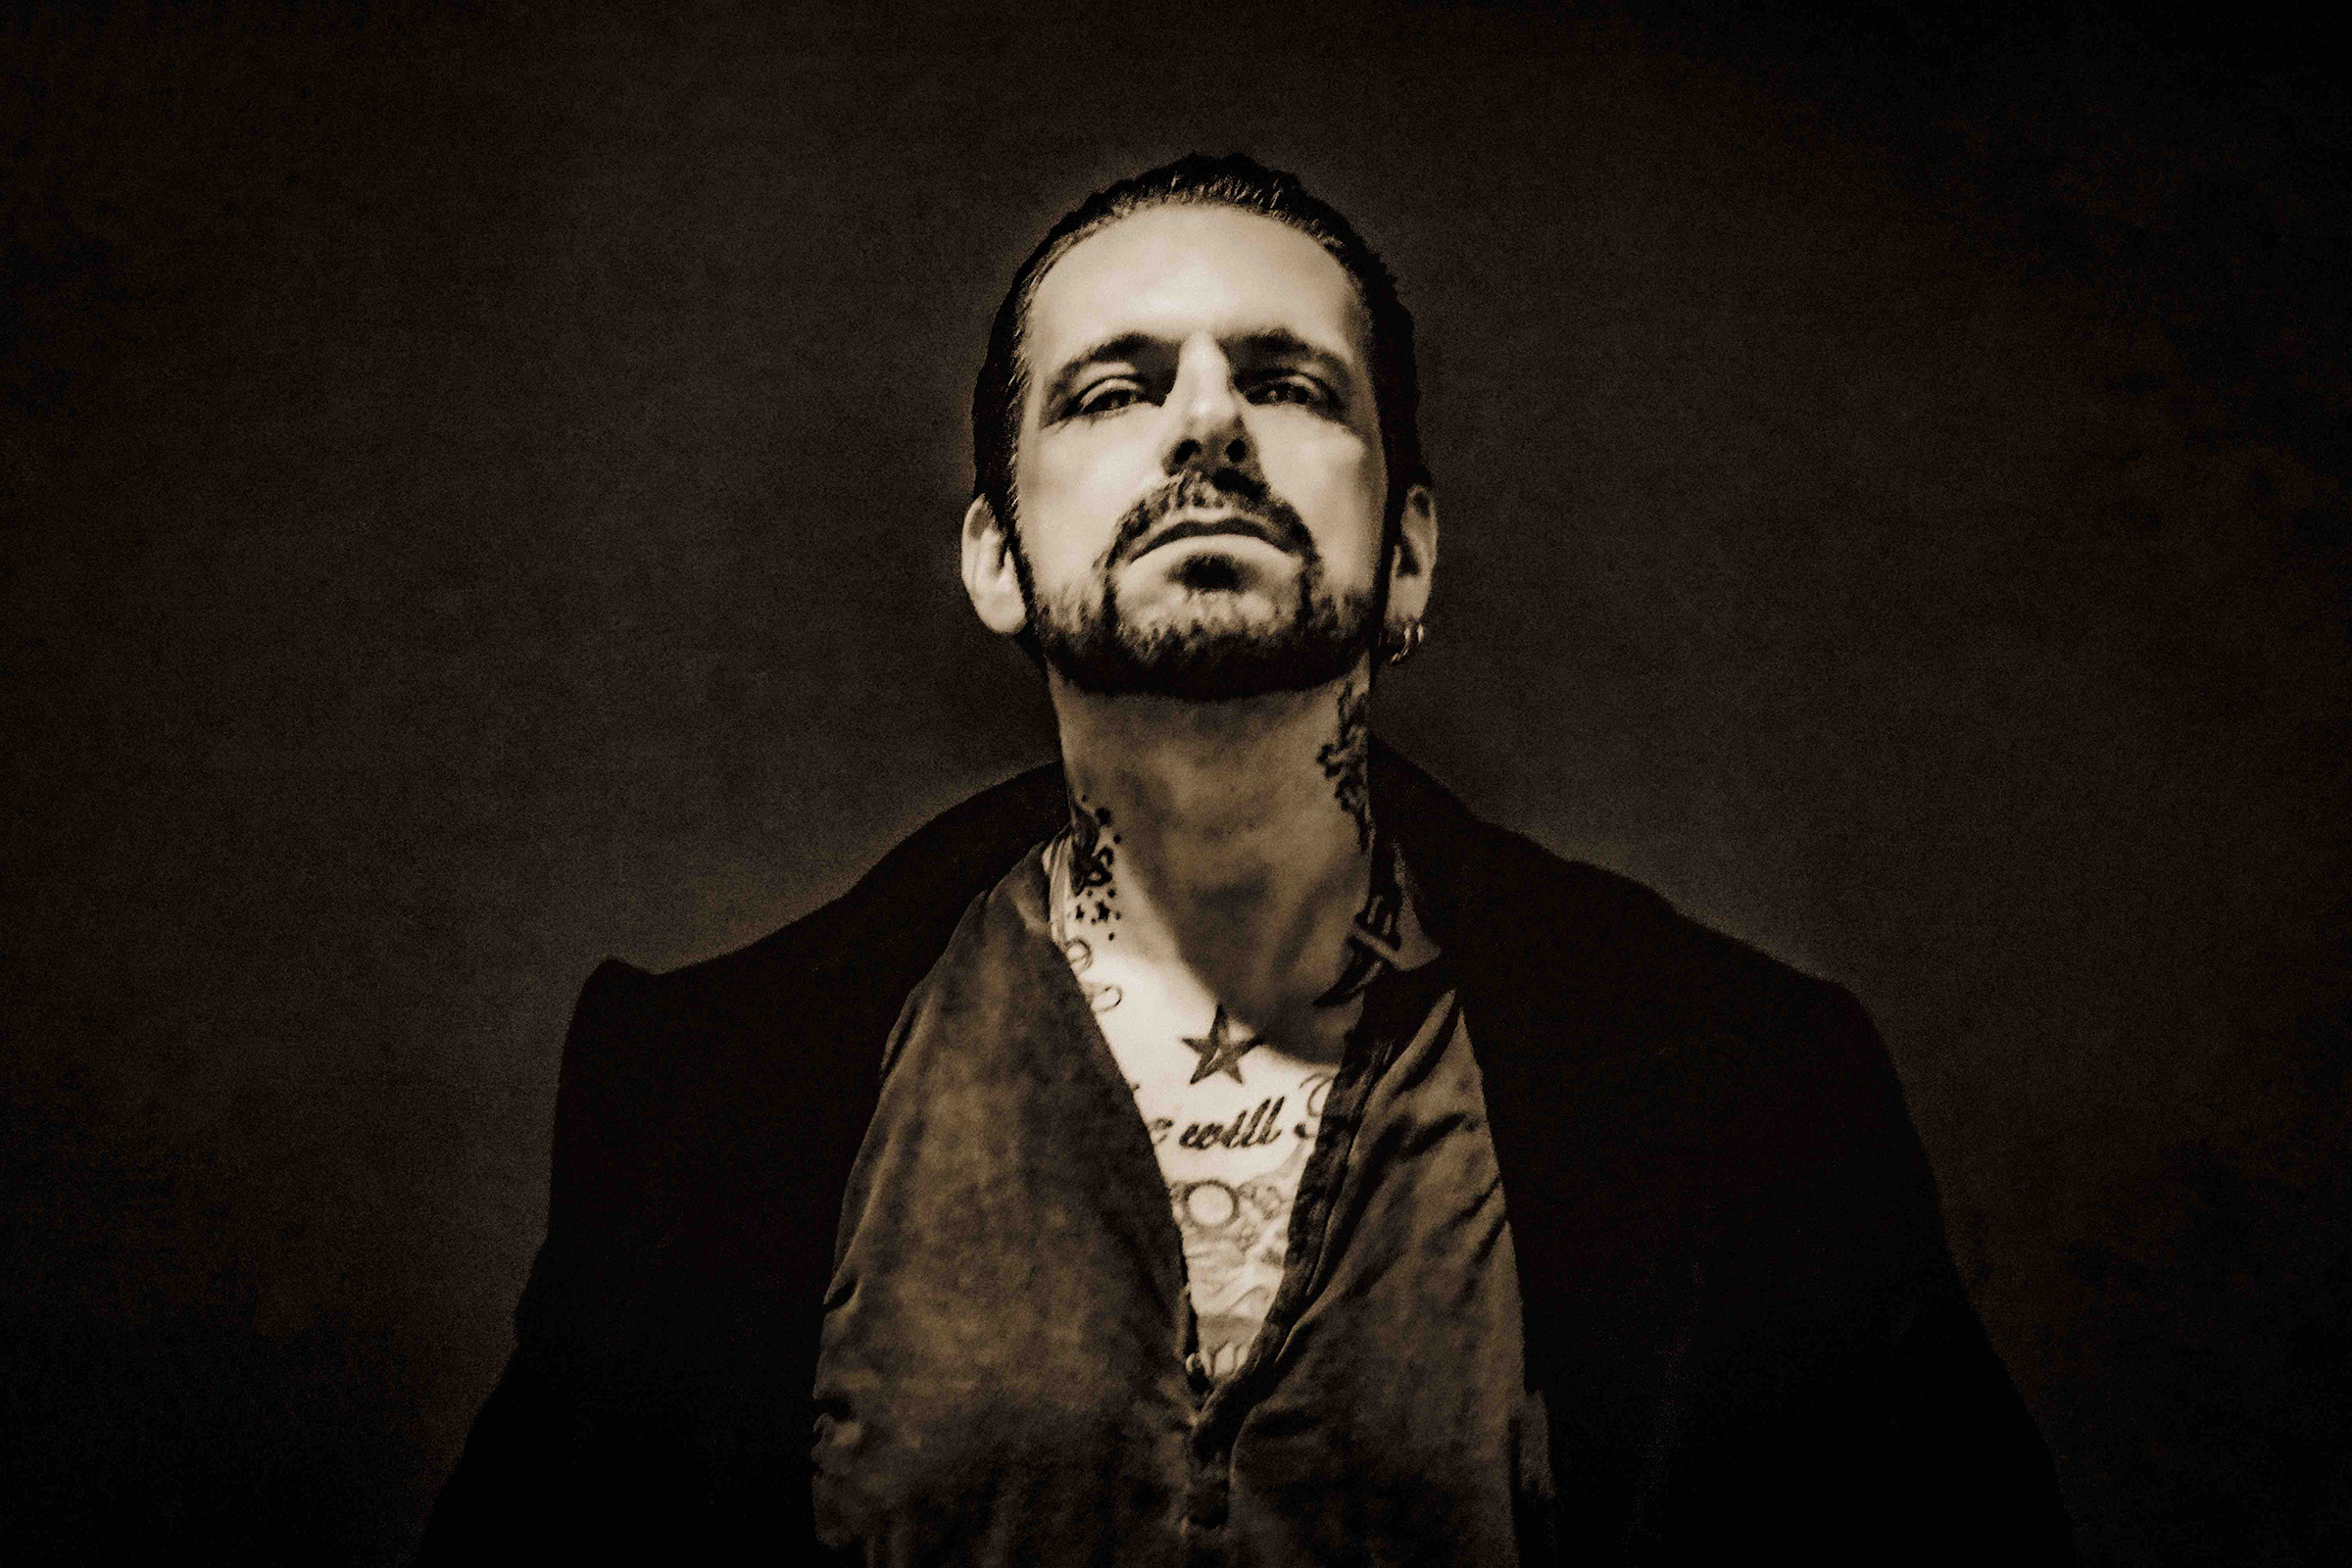 RICKY WARWICK announces headline Belfast show at Limelight 2 on Thursday, May 6th 2021